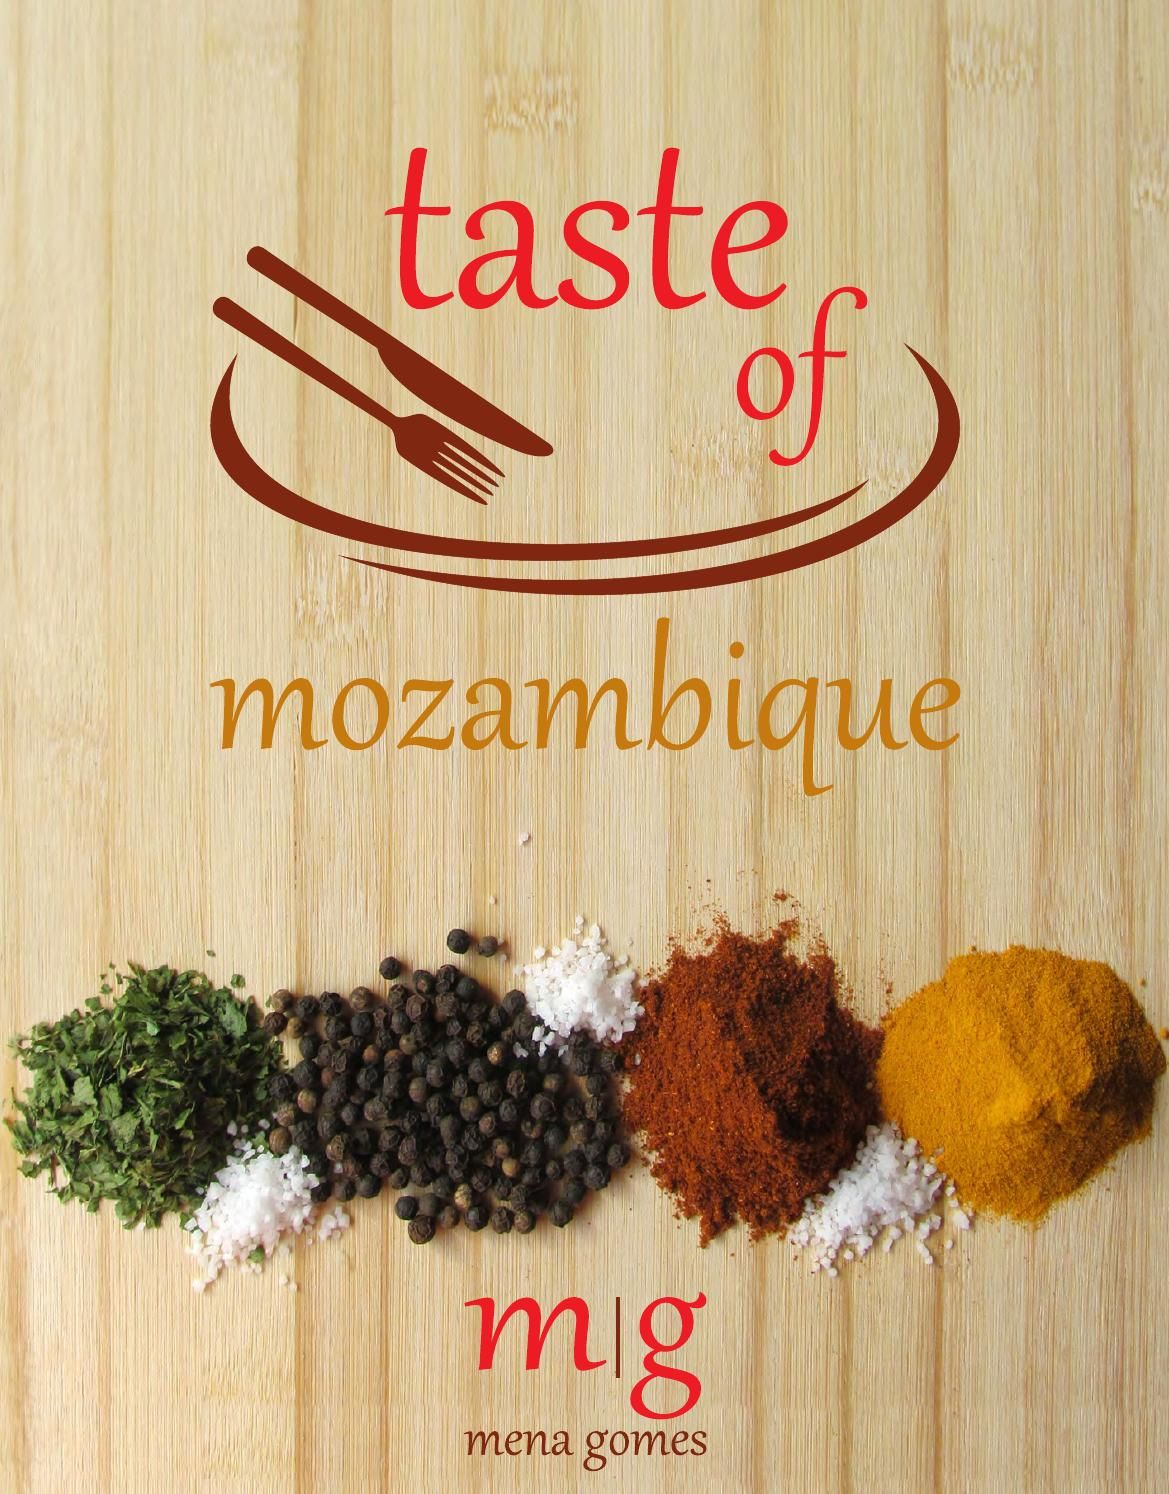 Taste of mozambique cooking book of recipes for free download very taste of mozambique cooking book of recipes for free download very simple and easy to forumfinder Gallery